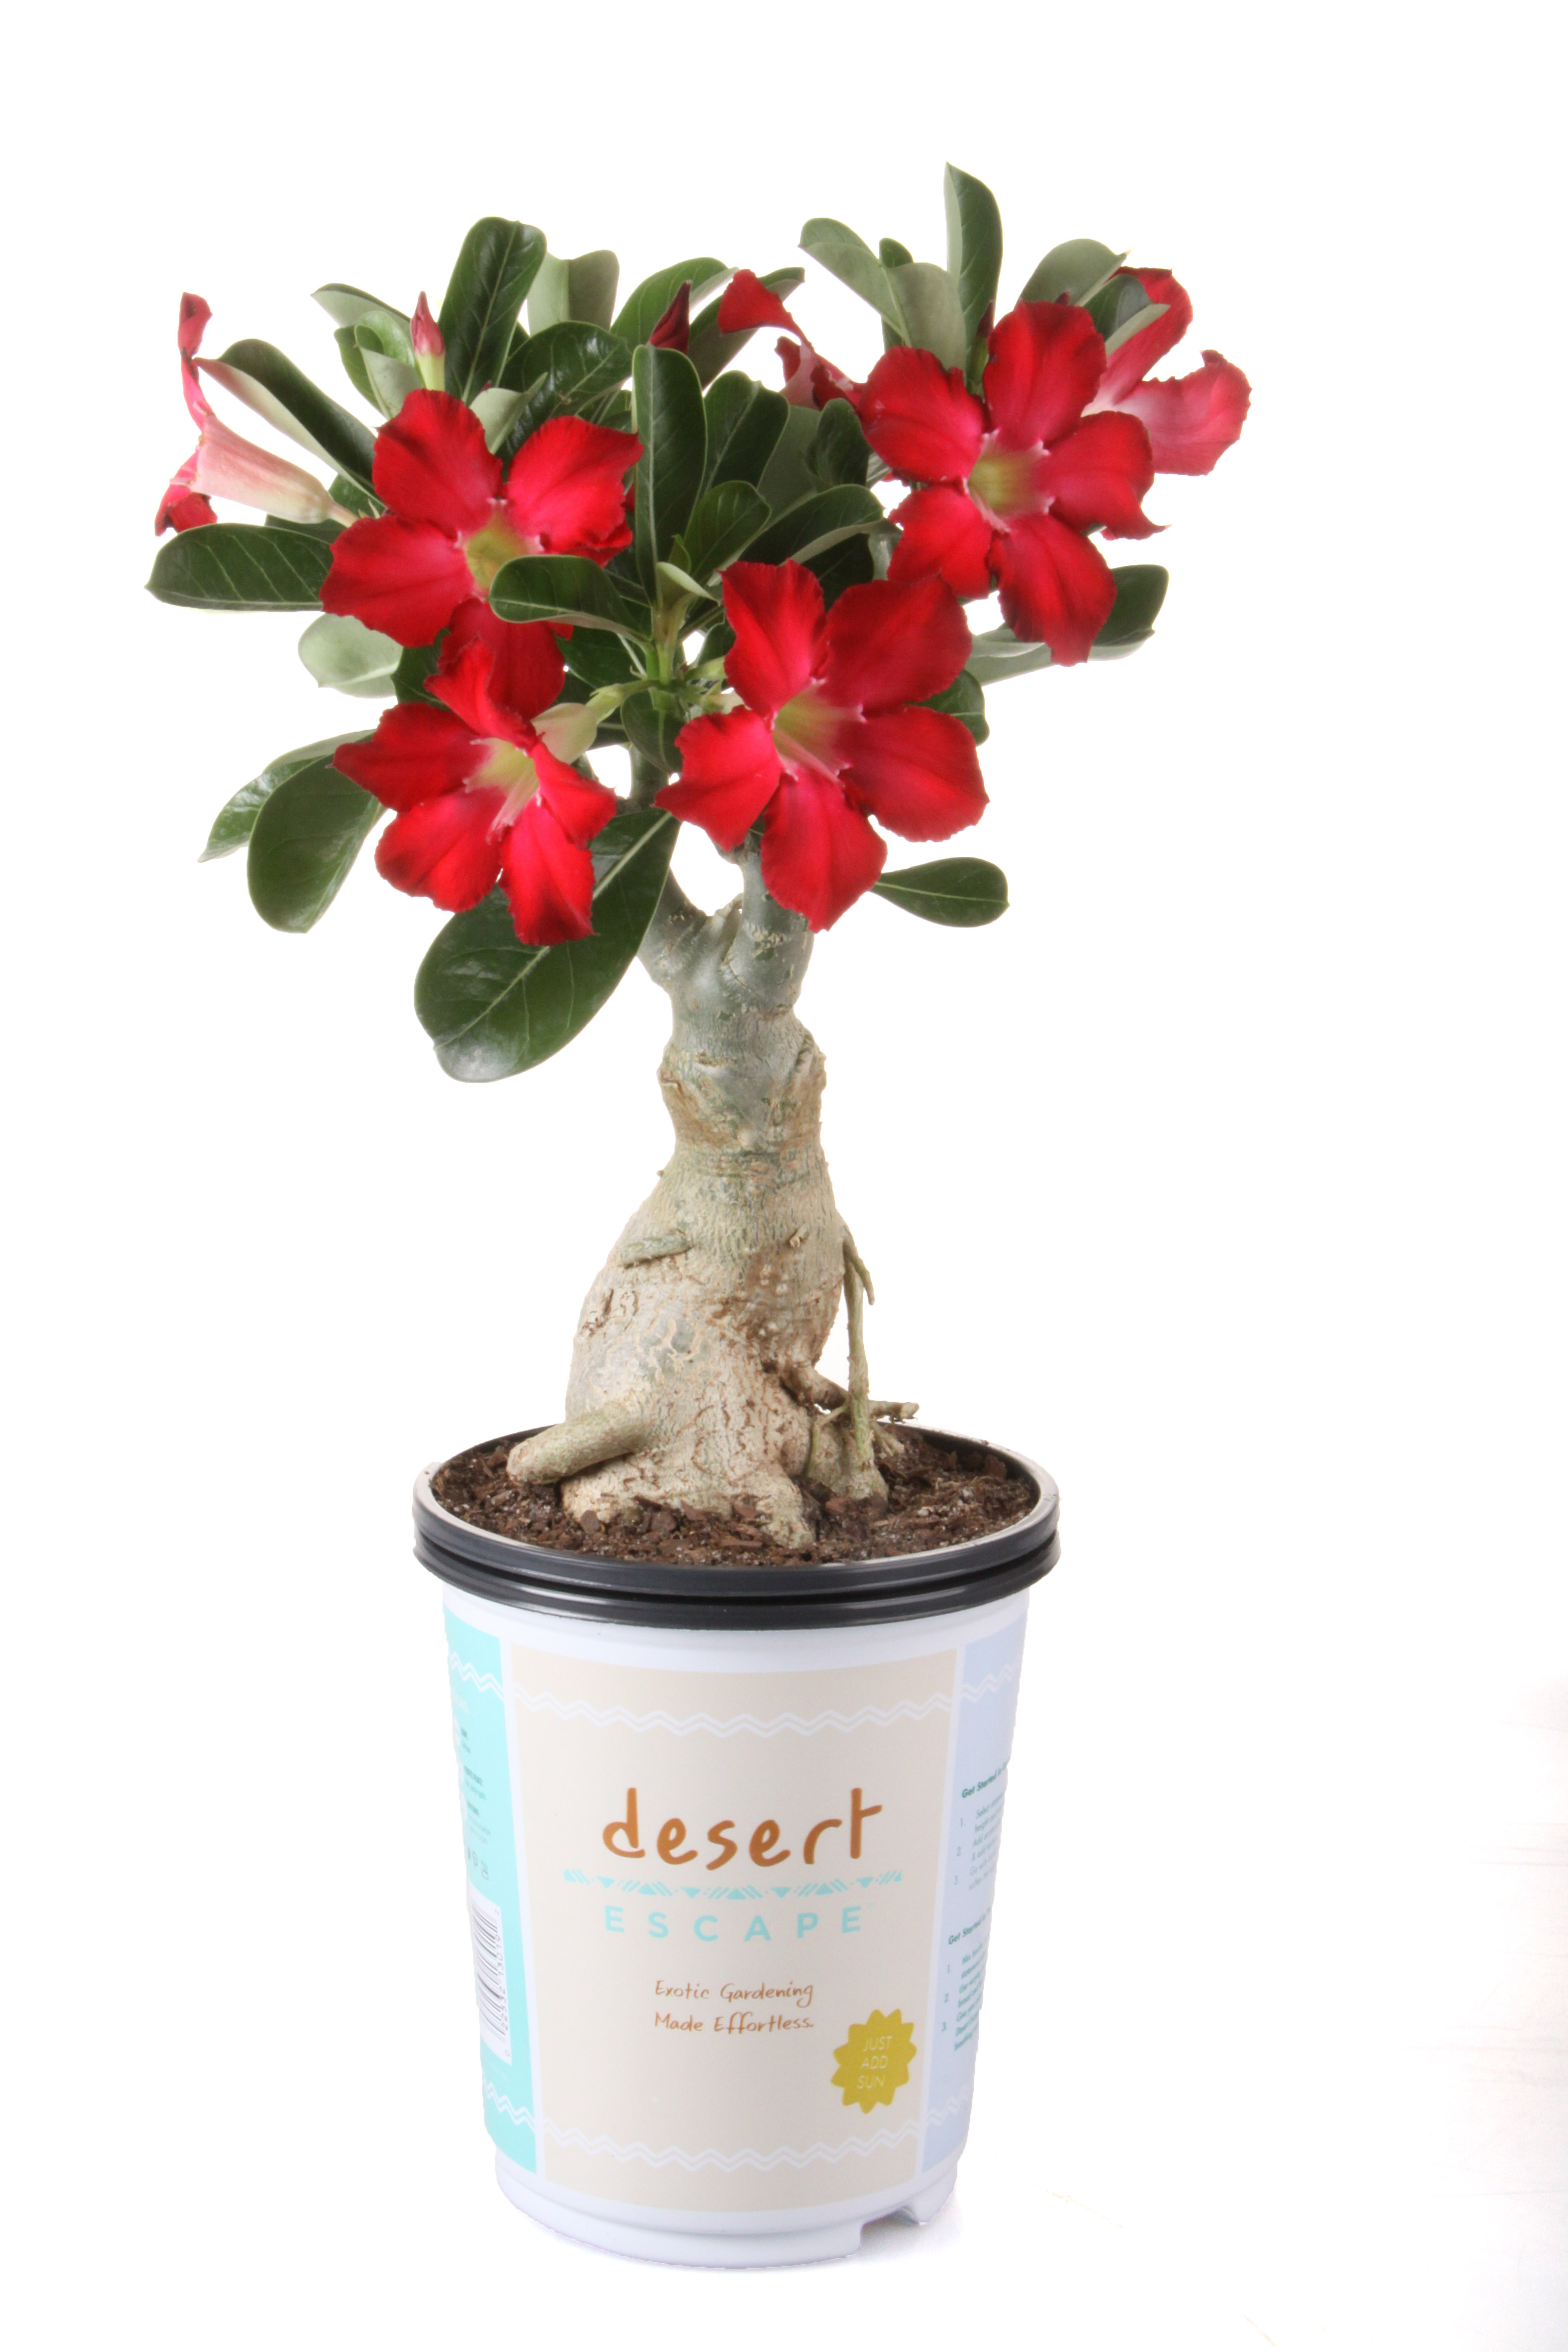 New Desert Escape Plant Collection From Costa Farms